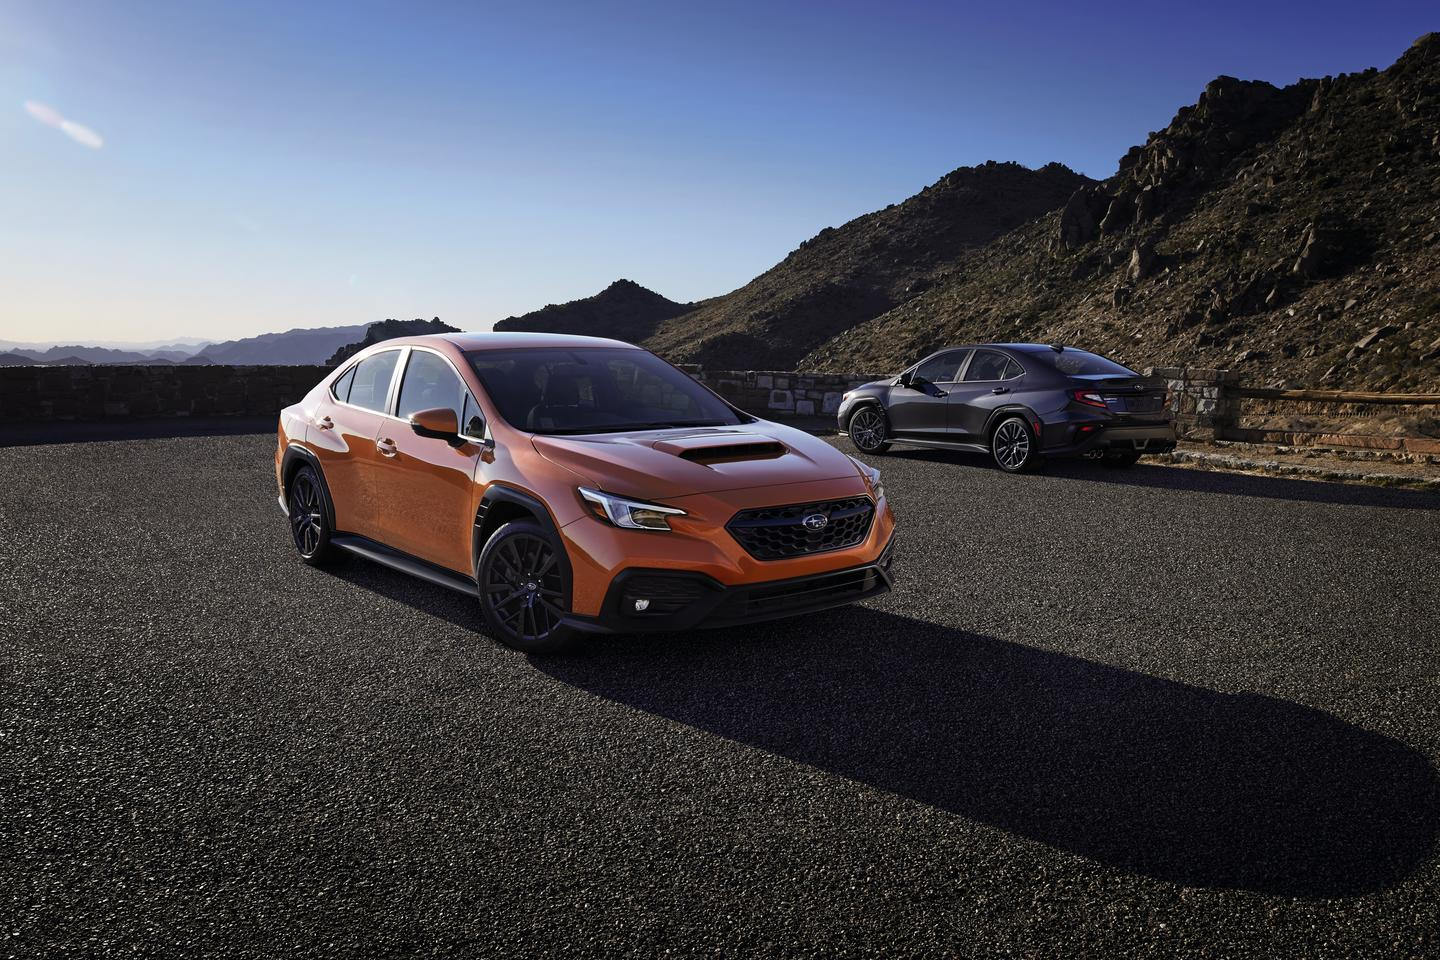 Subaru has introduced the fifth generation of the rally-born WRX